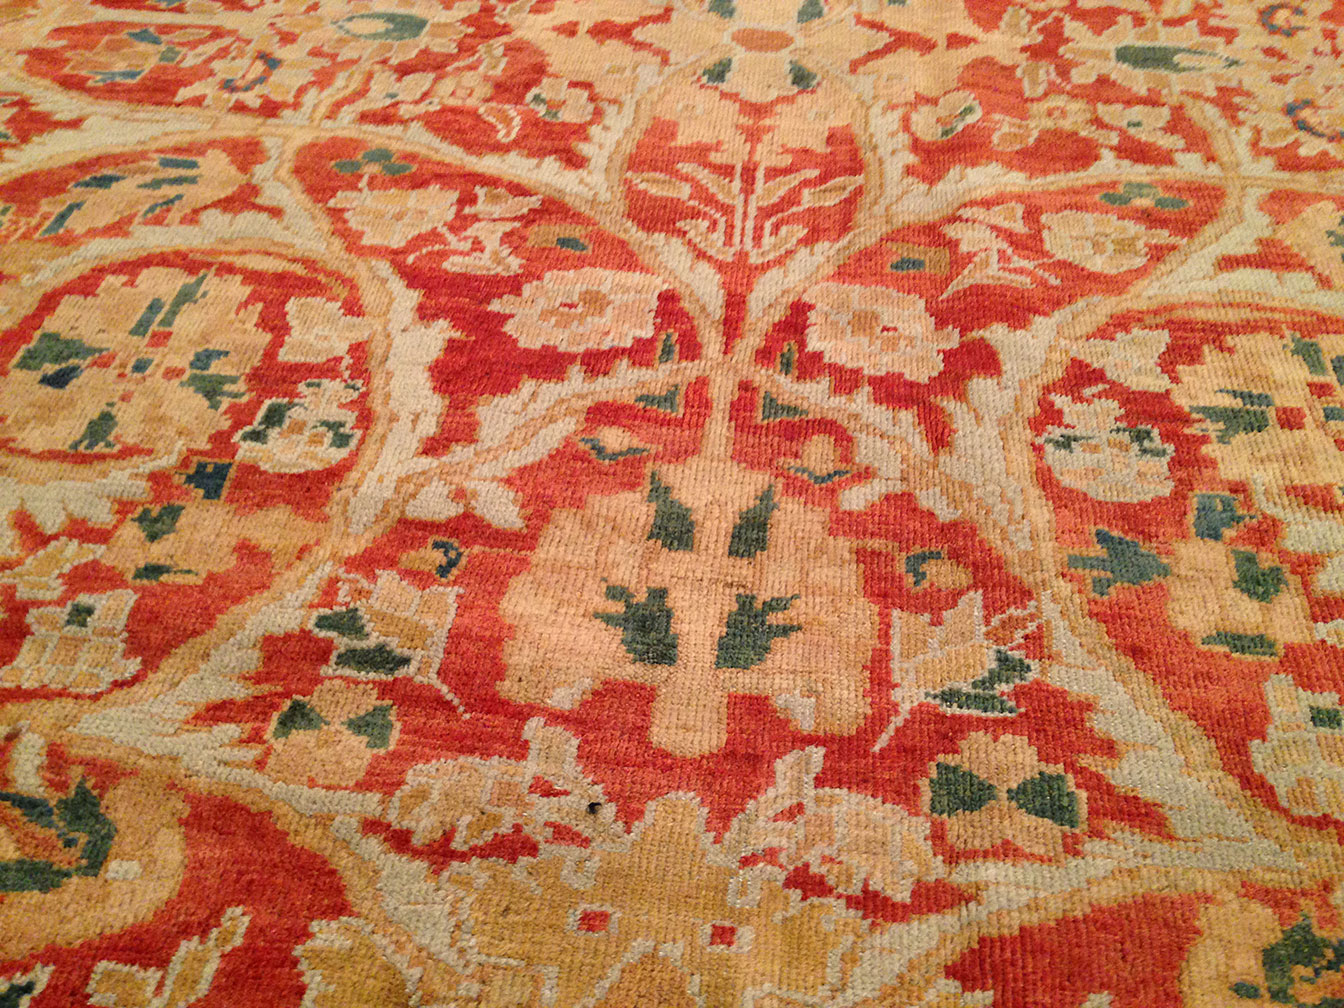 Antique sultan abad Carpet - # 9638